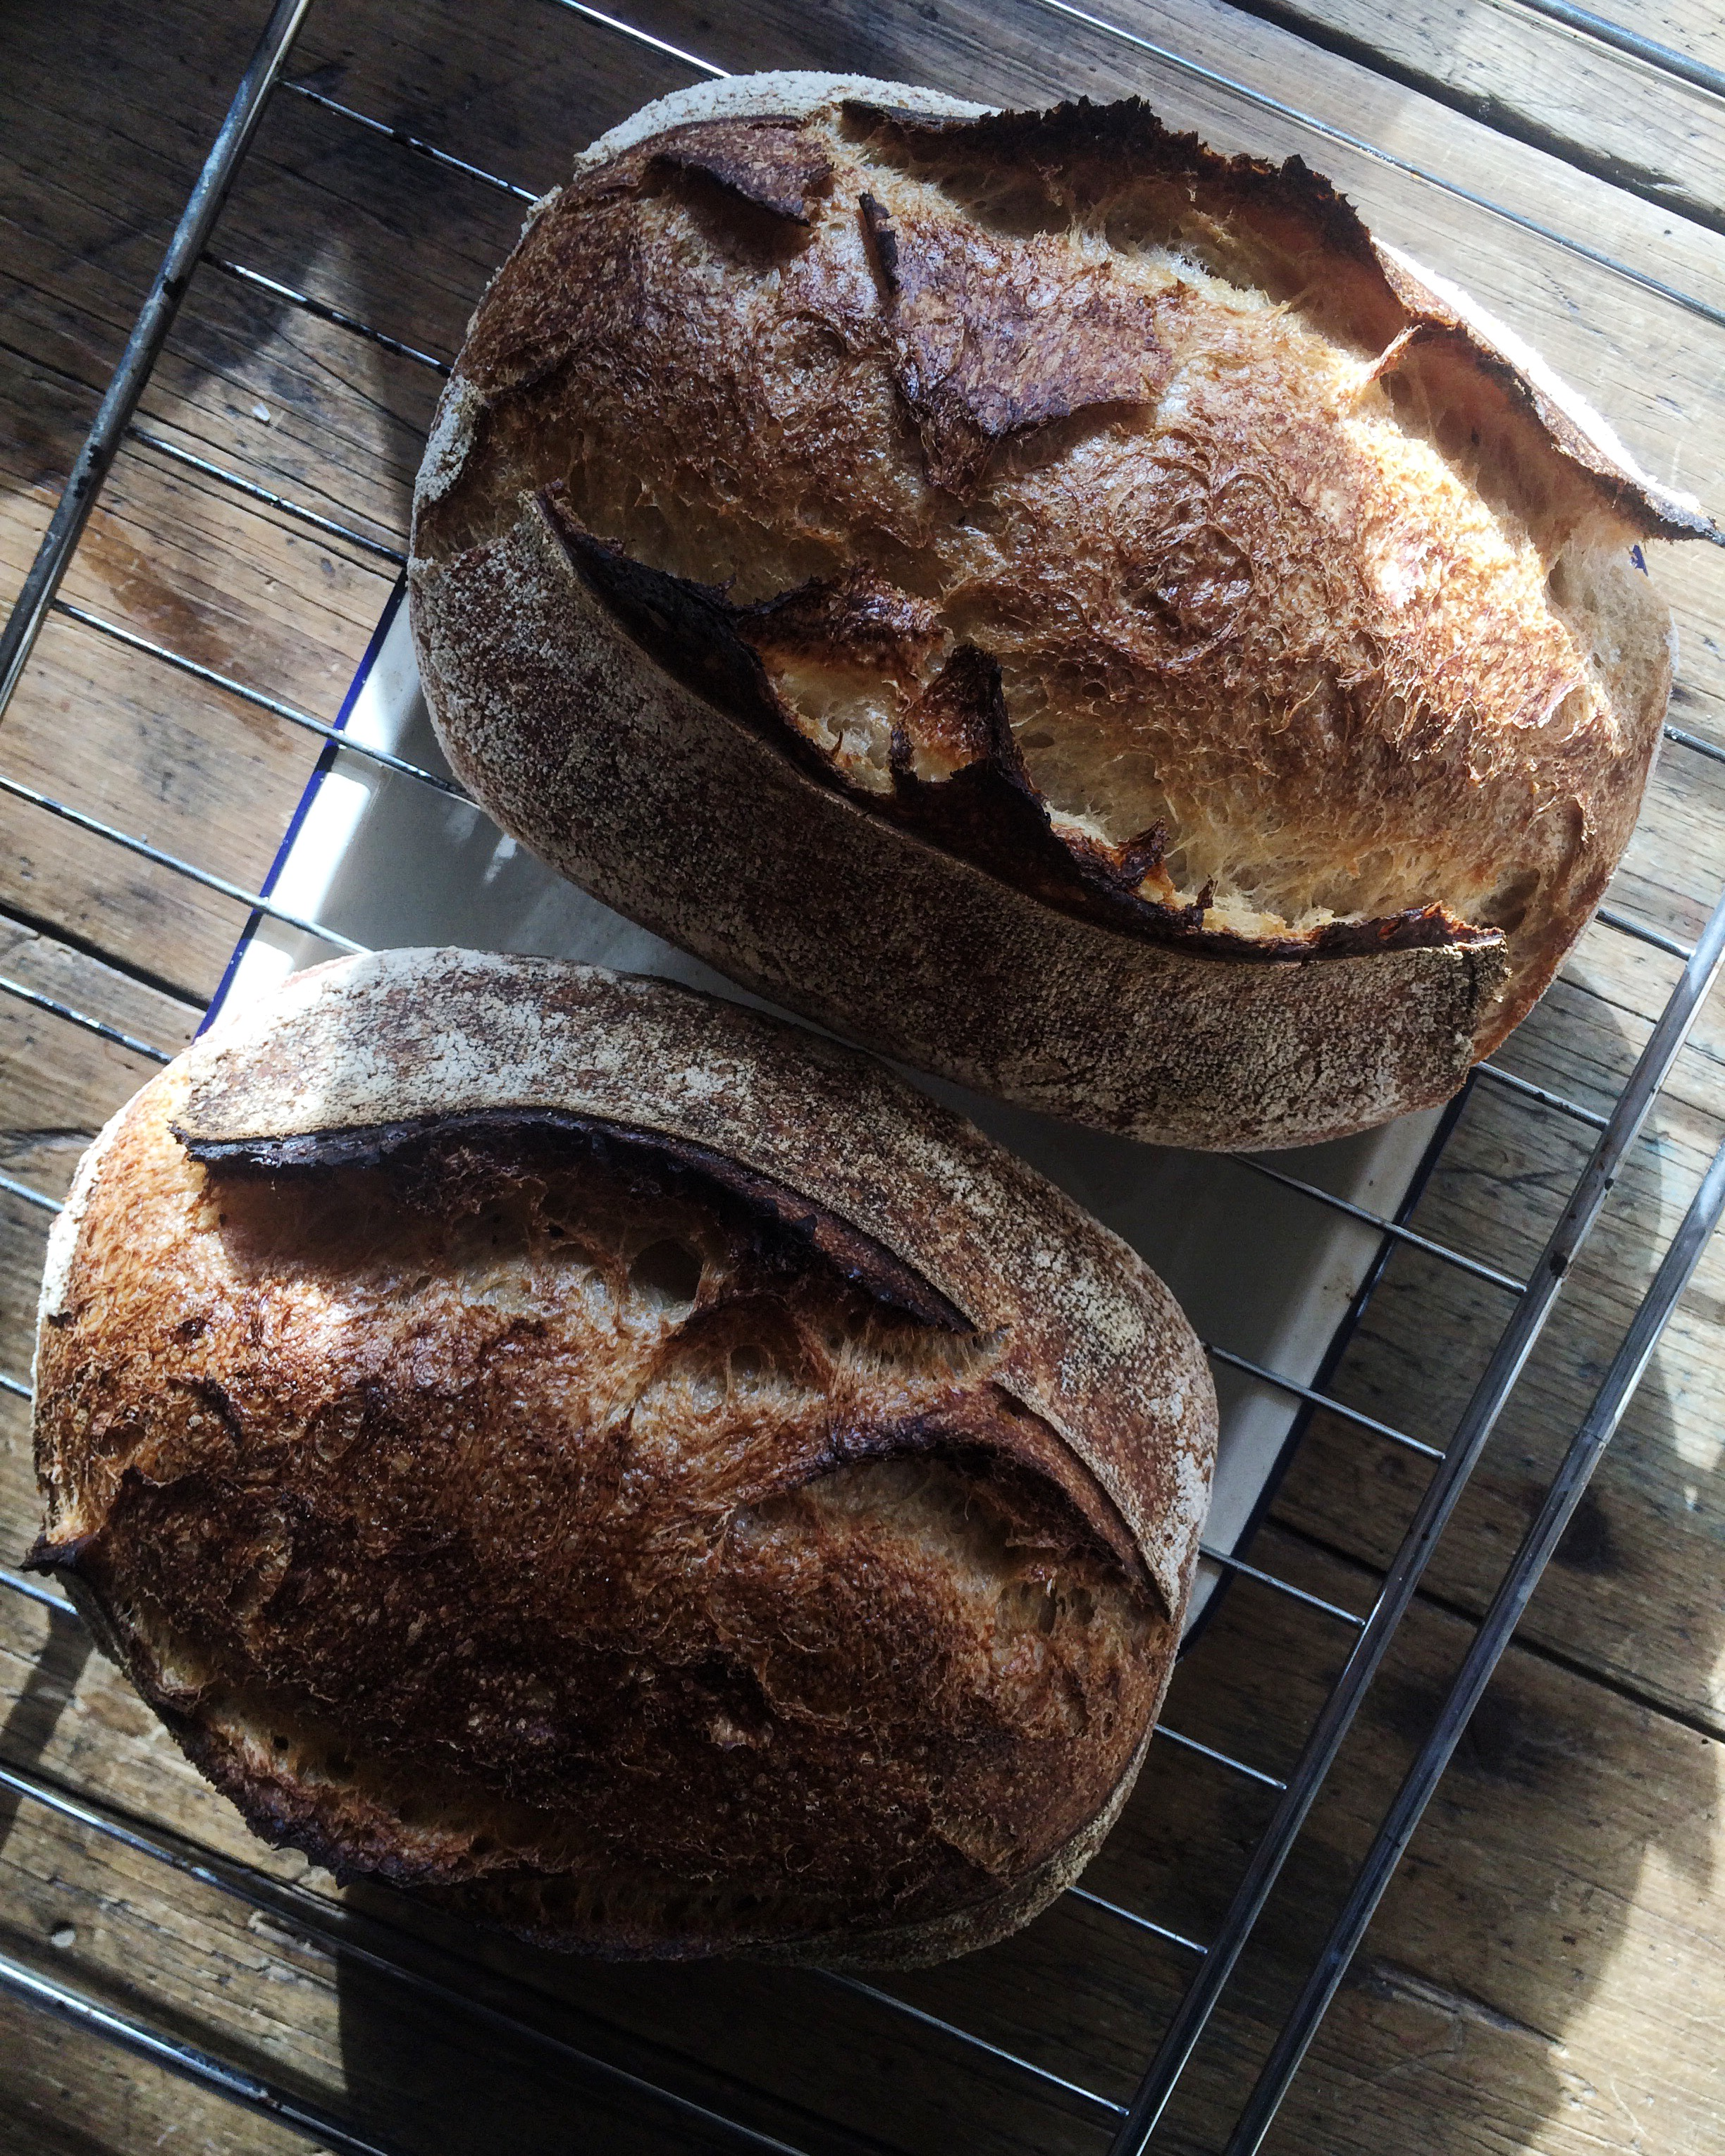 This (and the following picture) is of Country Loaf, a recipe Katrina has been developing. She uses a mixture of white and wholegrain wheat flour and a little bit of whole spelt flour.